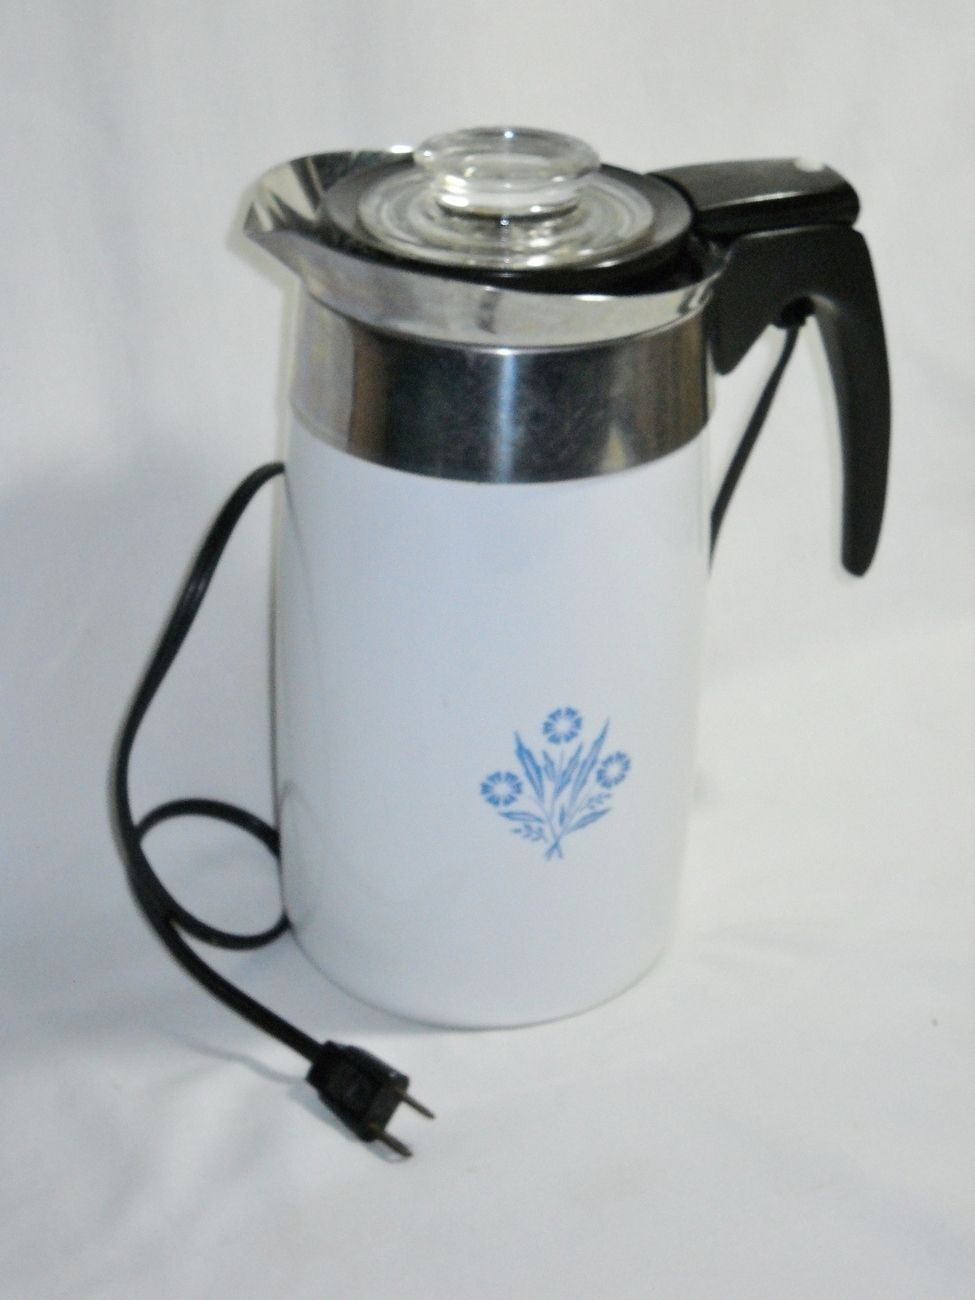 Corning Ware 10 Cup Electric Coffee Pot Complete